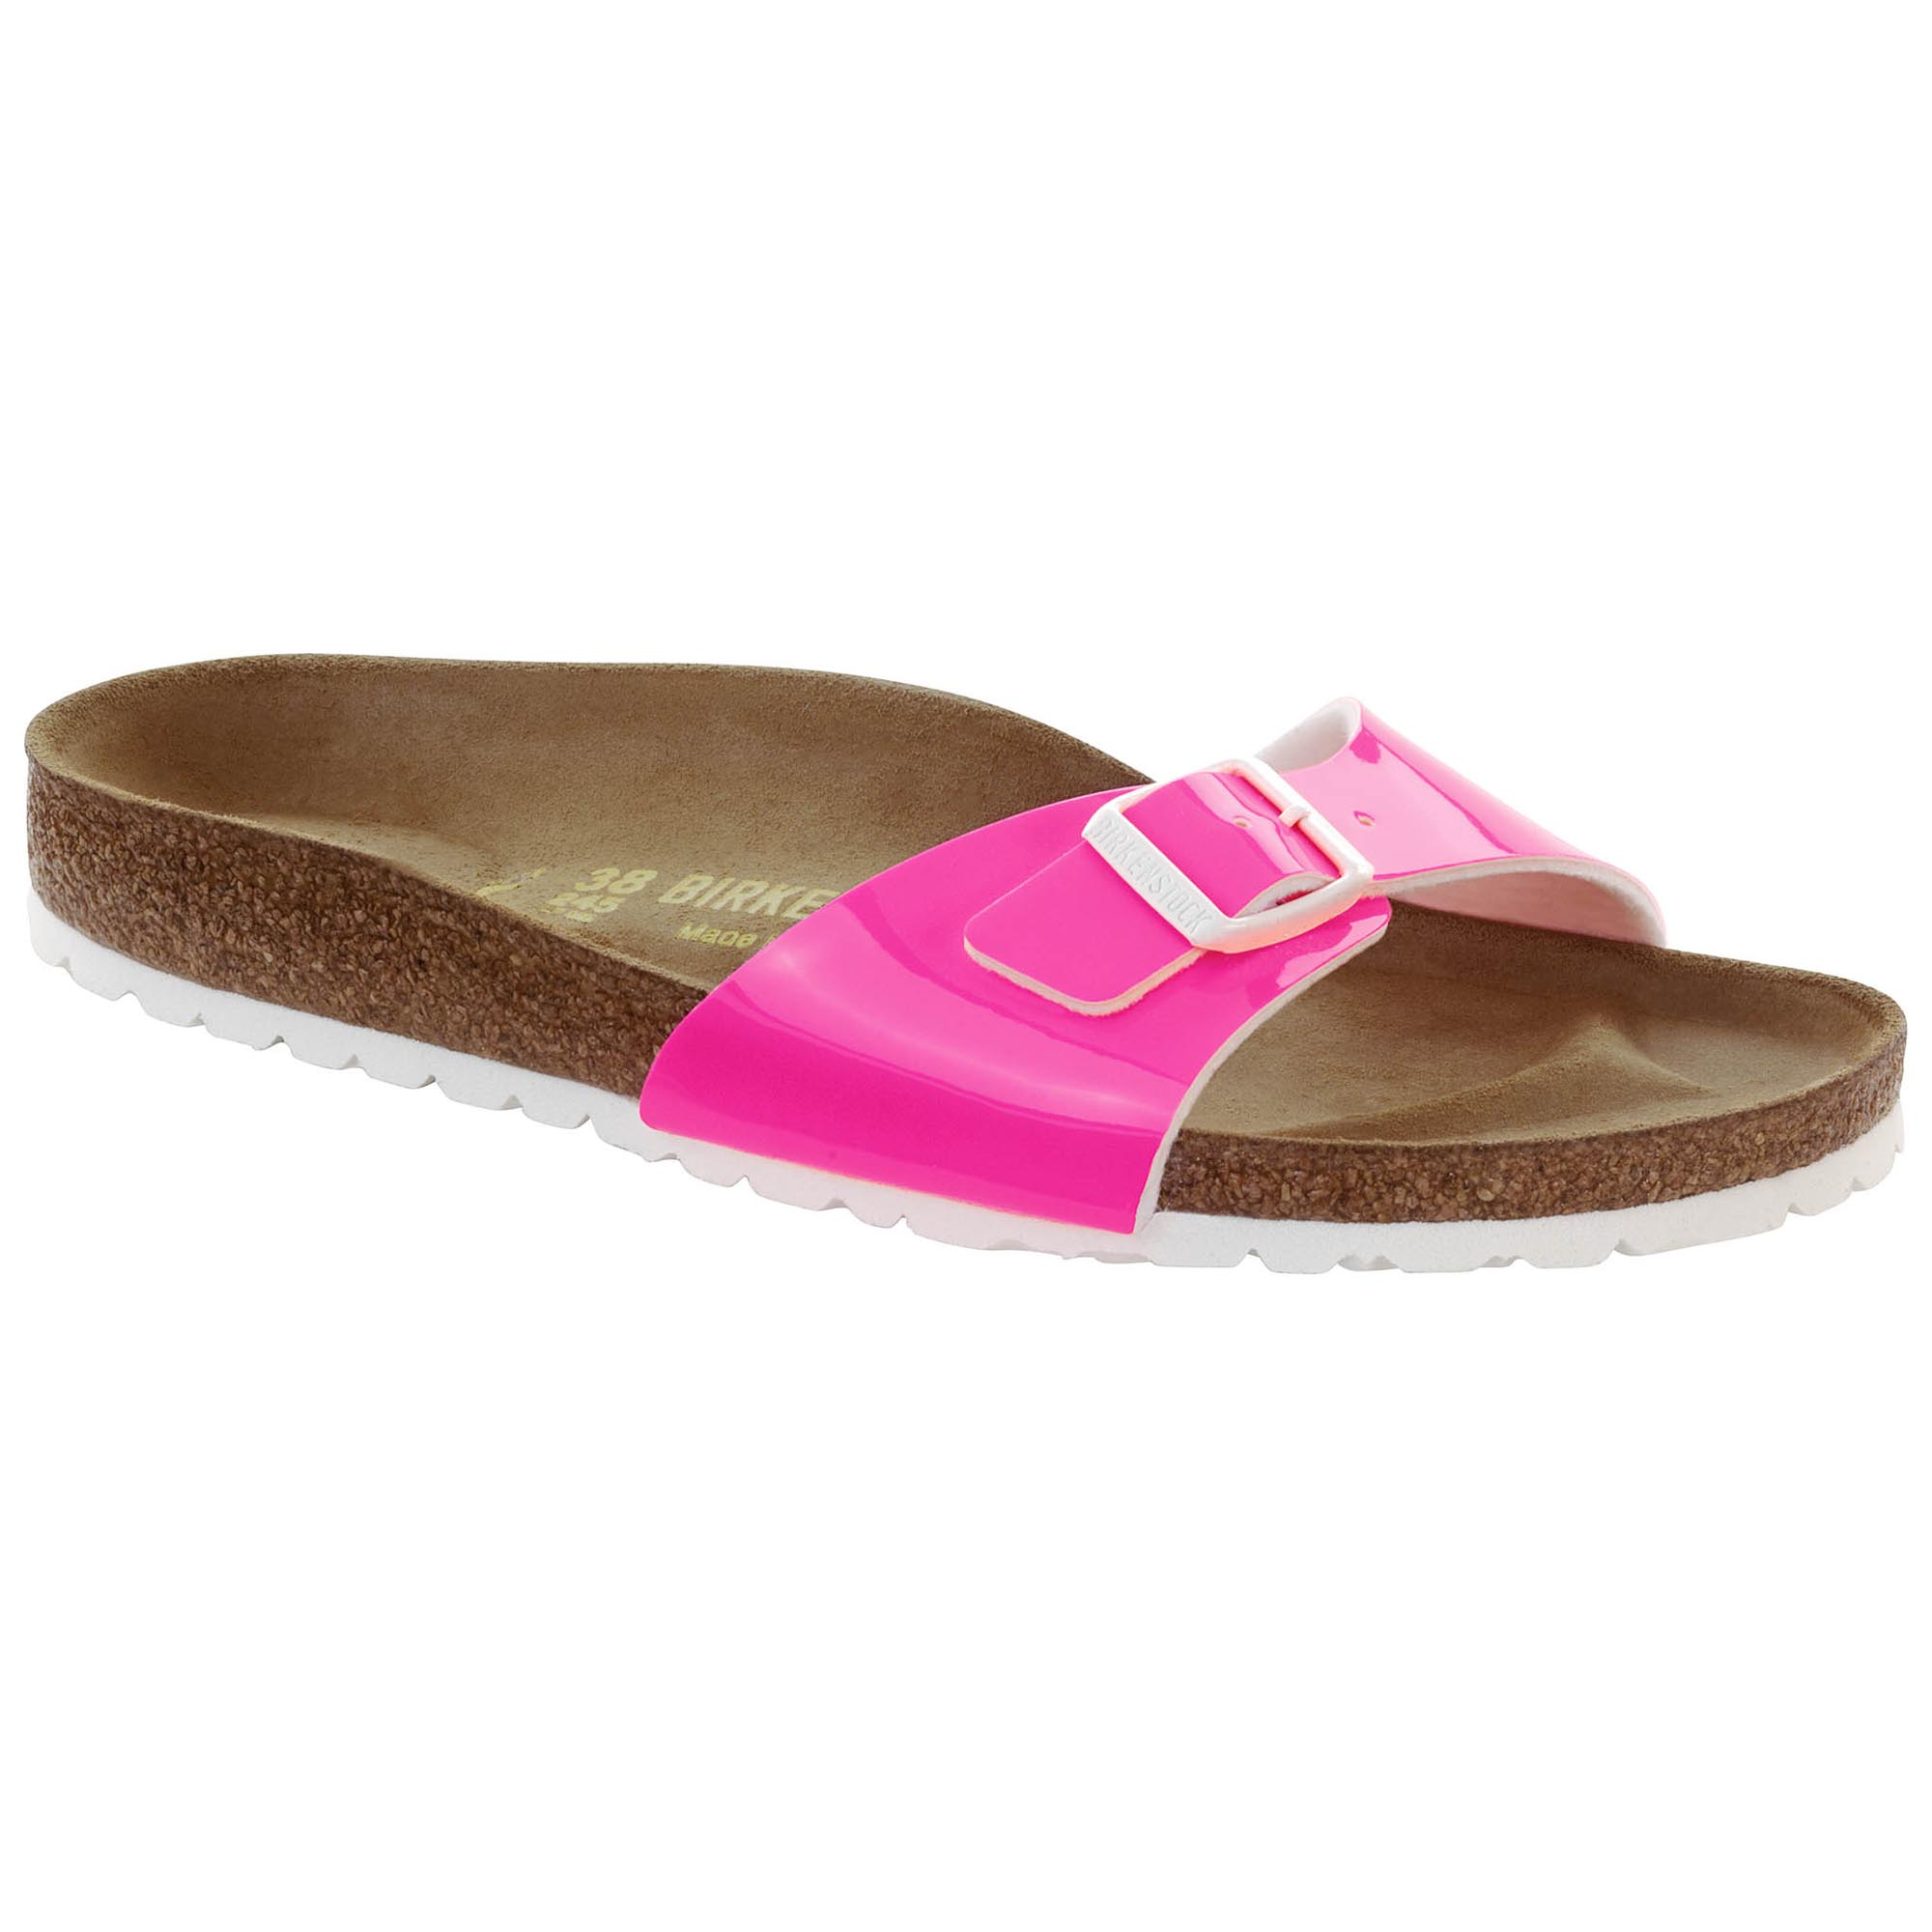 new products d3bfb 318cf Madrid Birko-Flor Patent Patent Pink